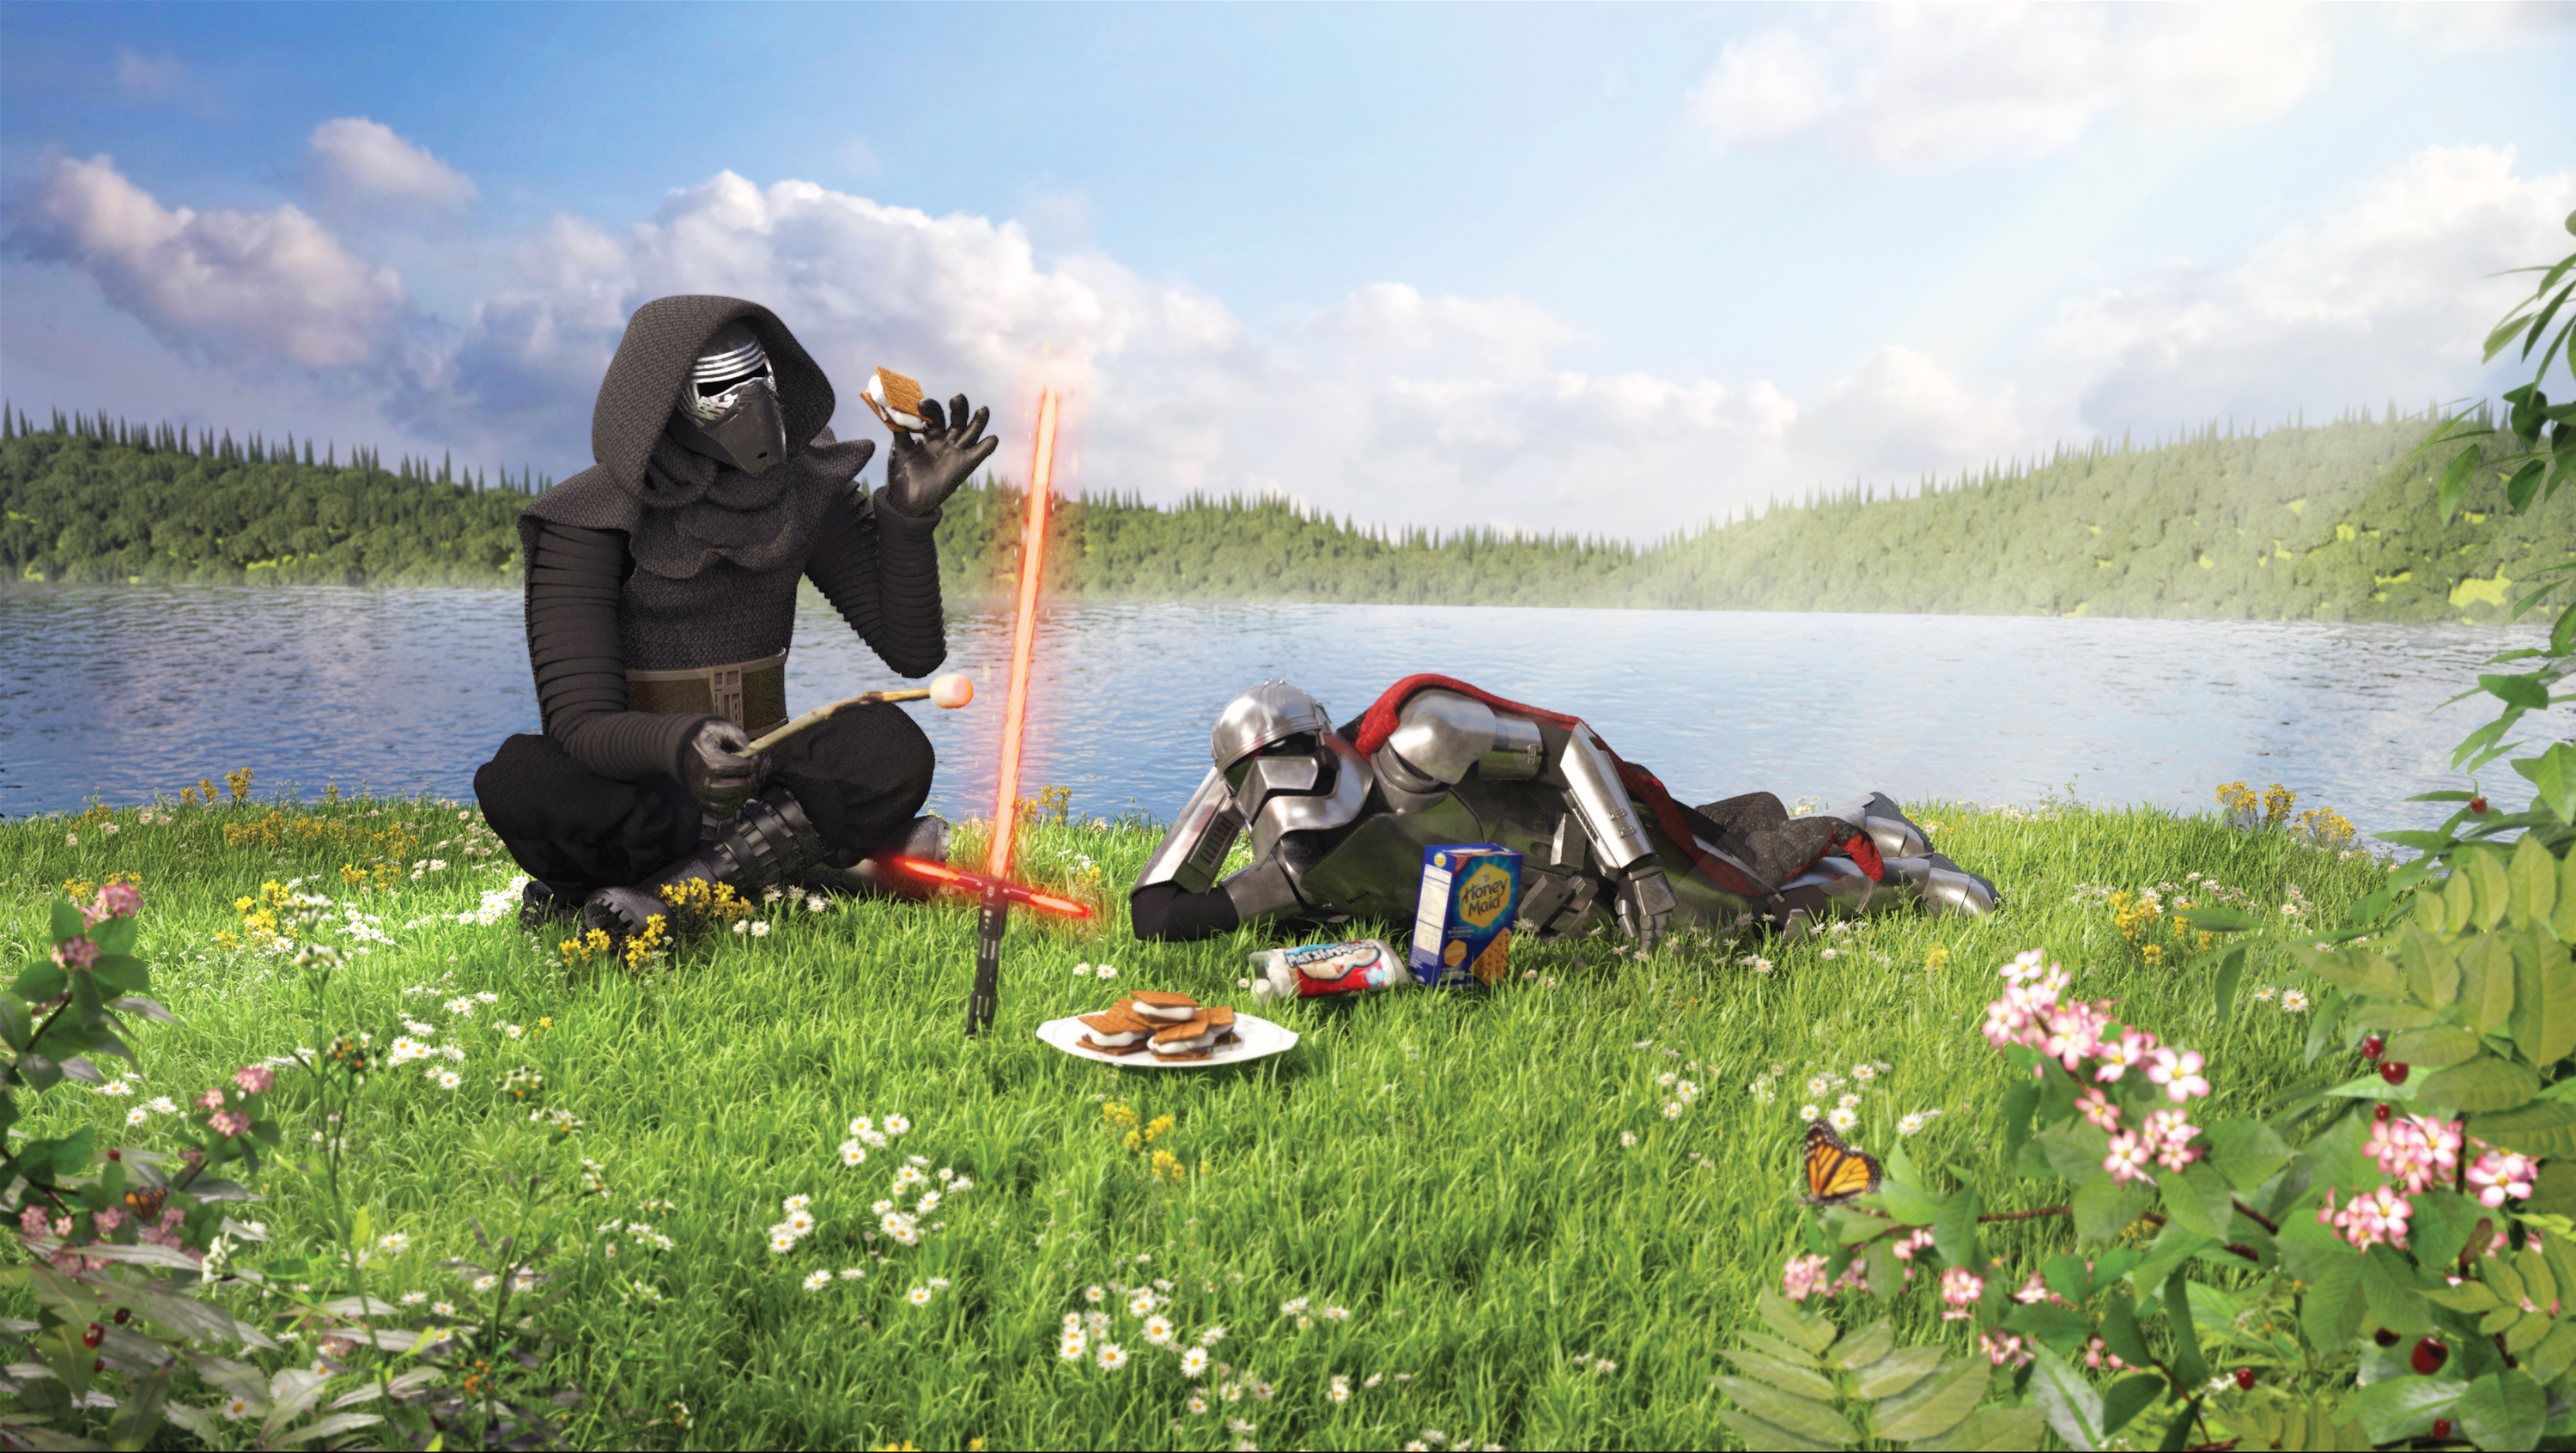 Kylo Ren and Captain Phasma Eating S'Mores